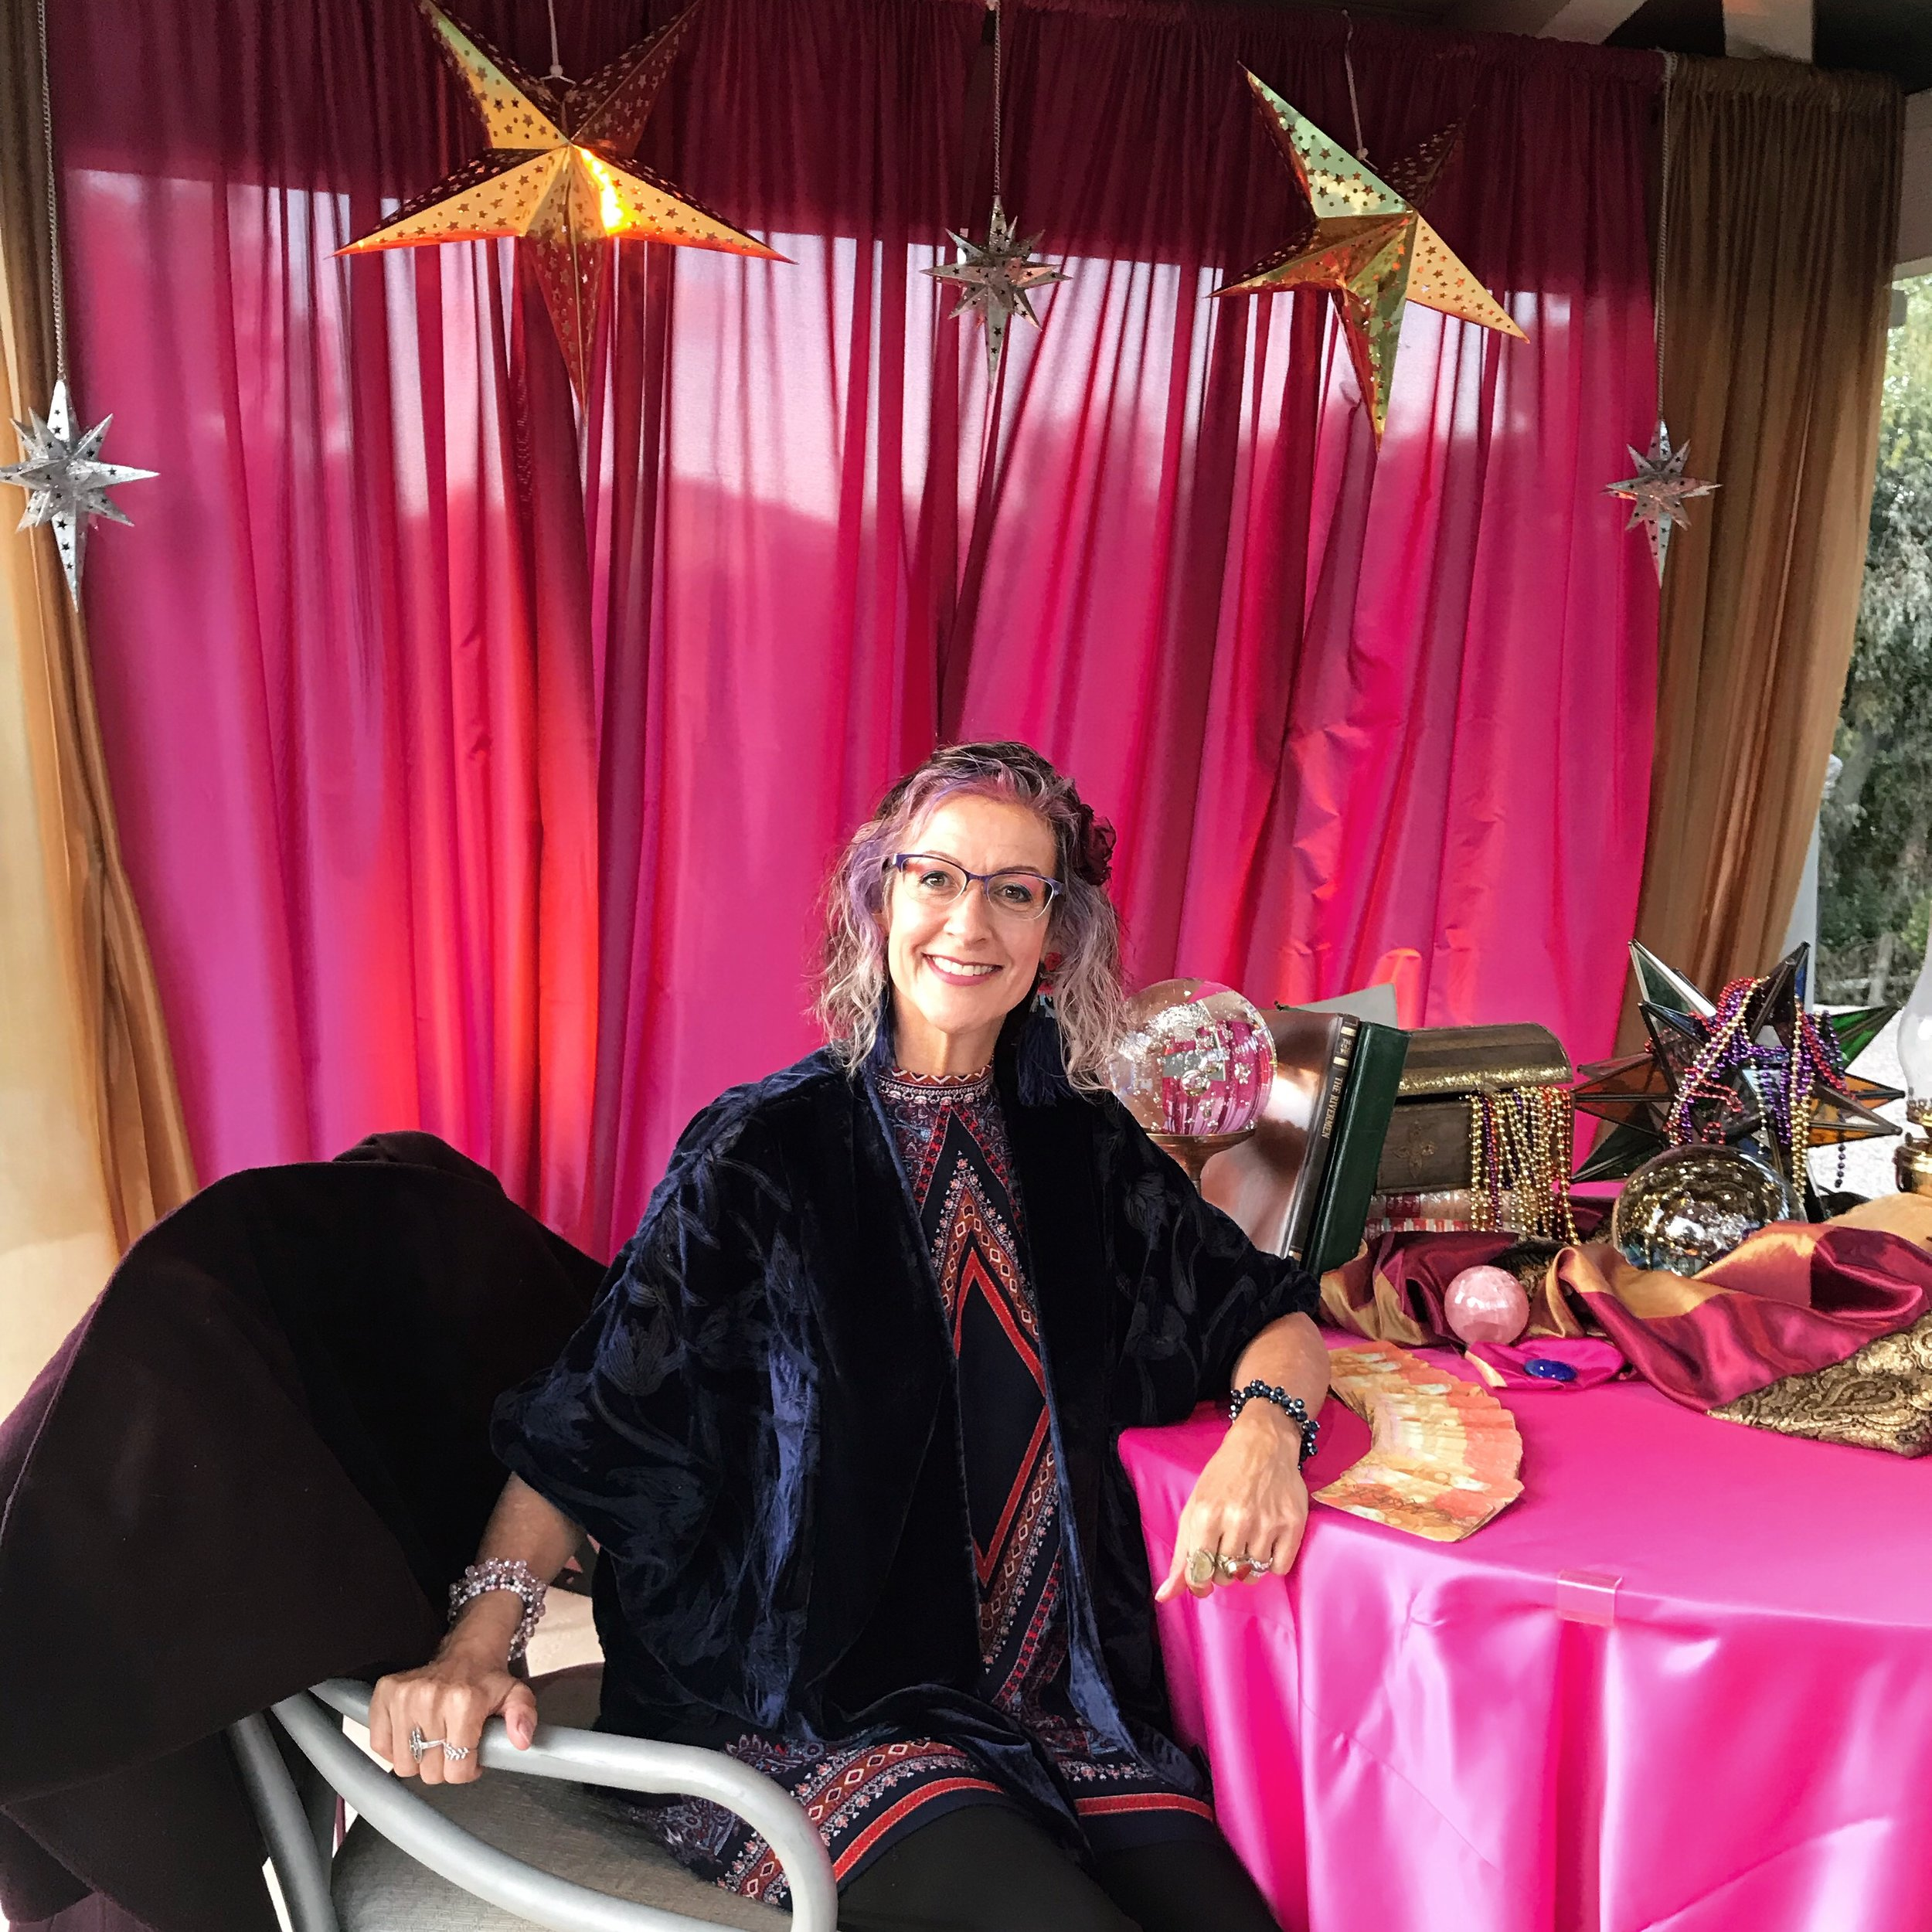 Katy ready to read … Intuitive readings via tarot cards at an event.